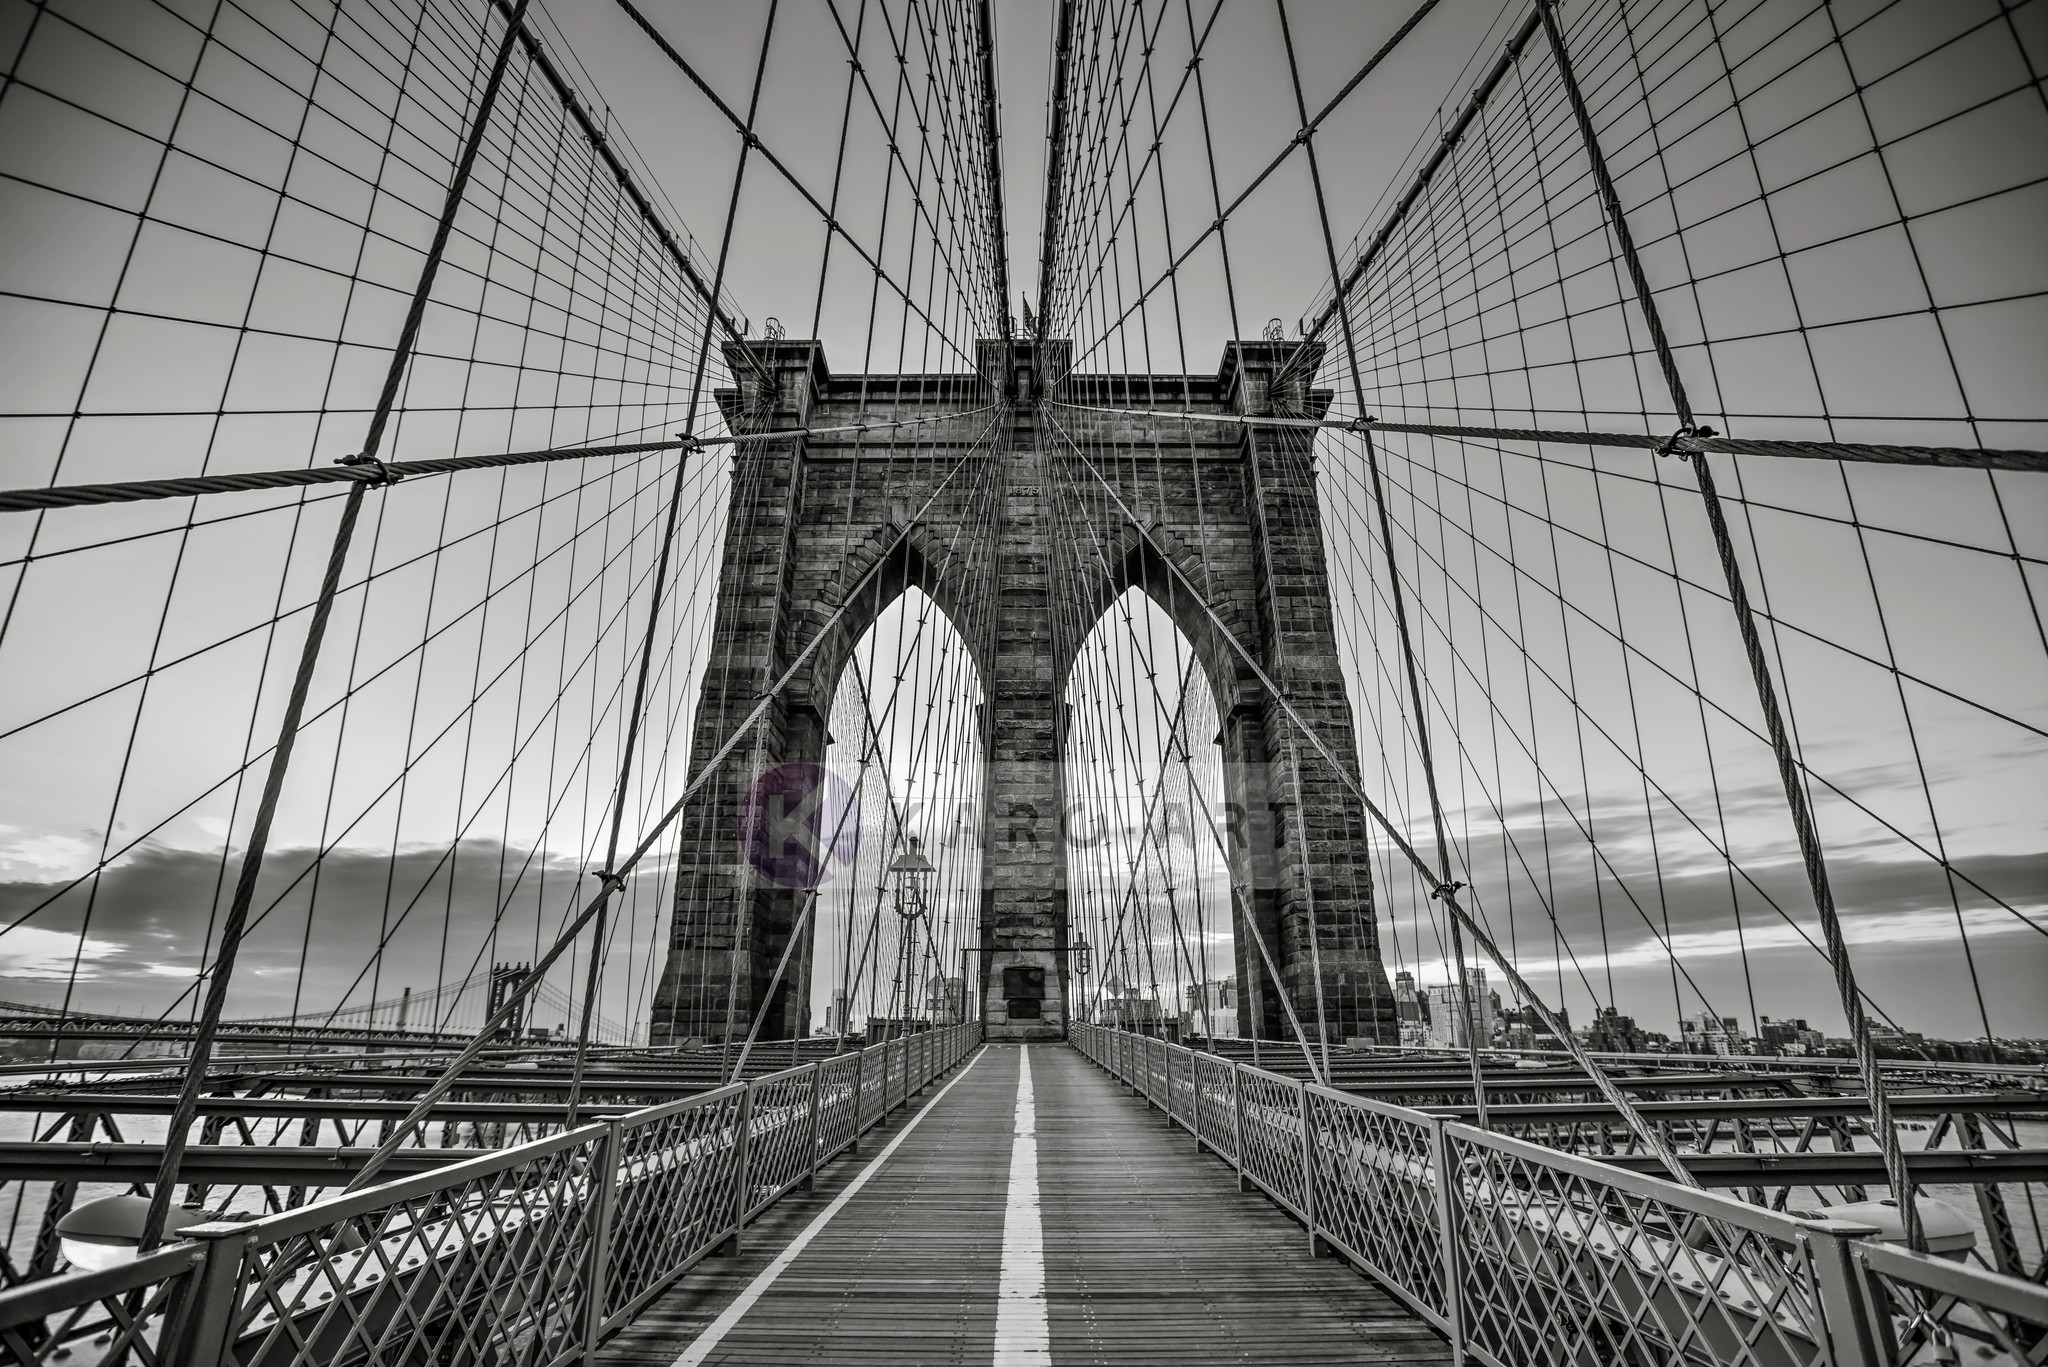 Afbeelding op acrylglas - Brooklyn Bridge Zwart Wit, New York